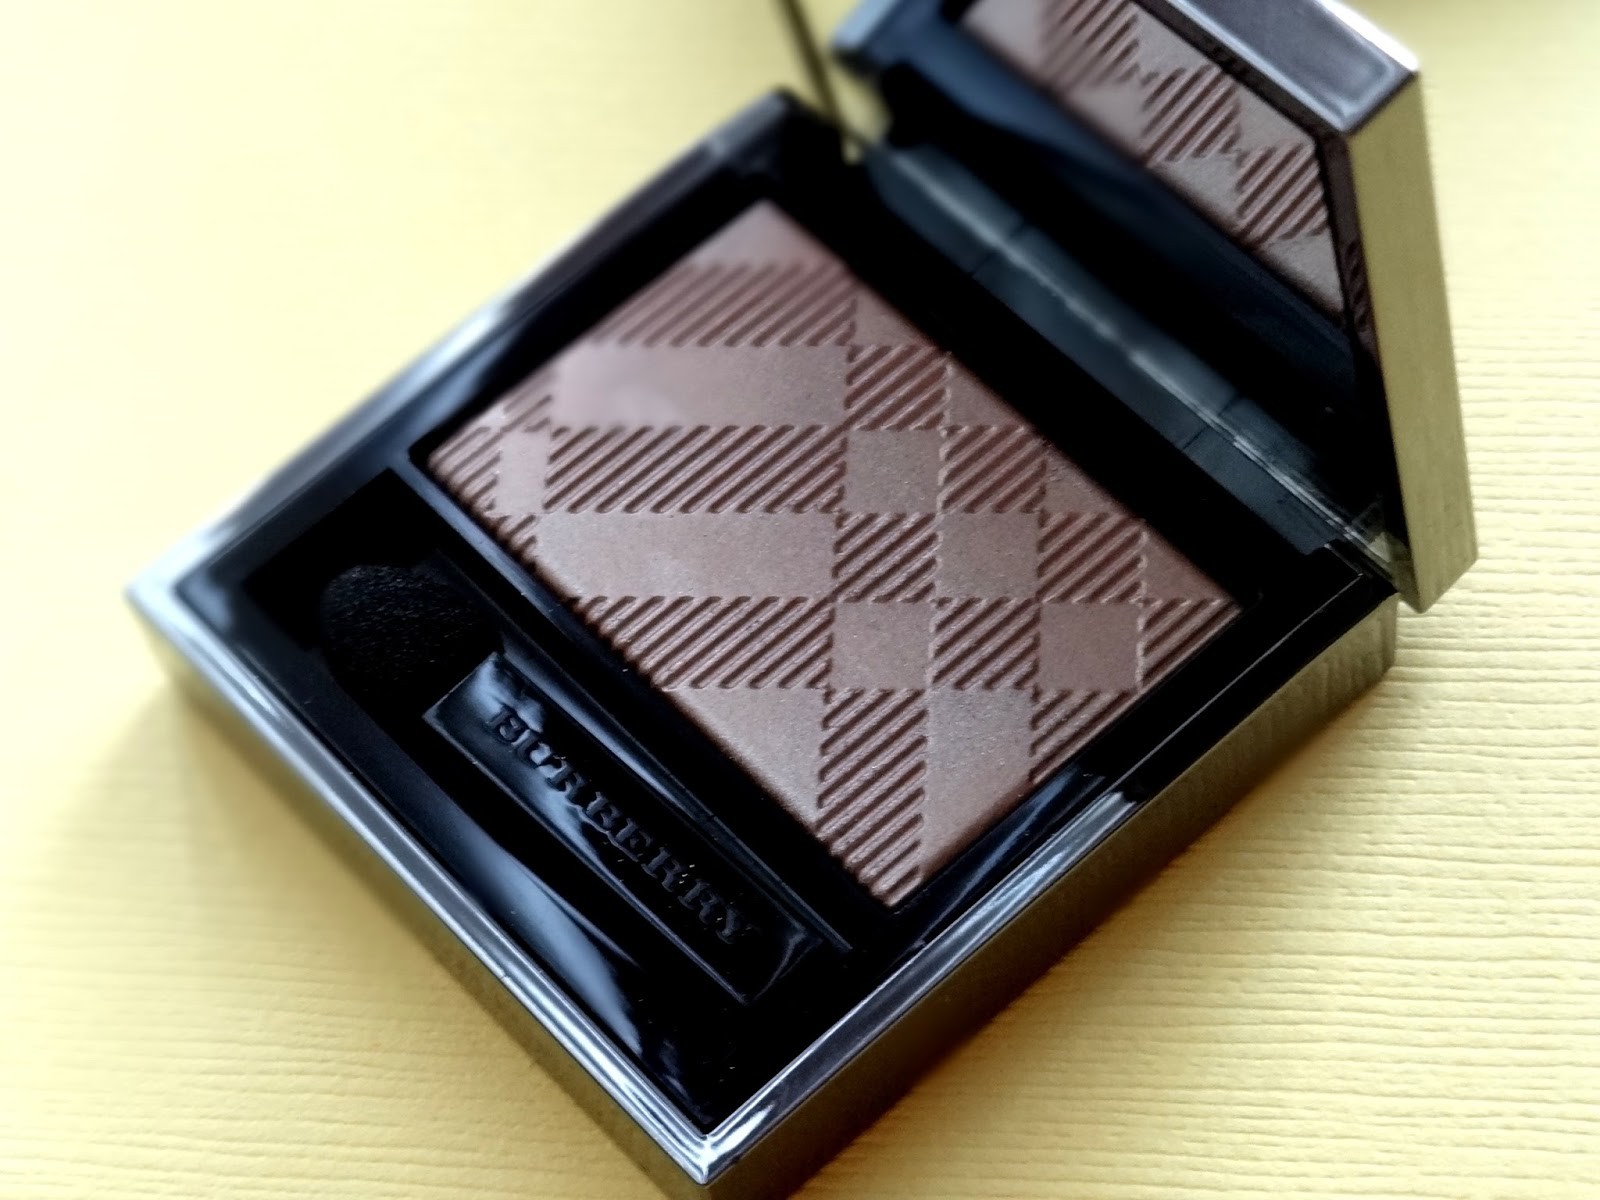 Burberry Wet & Dry Glow Eye Shadow in Nude 002 Review, Photos & Swatches